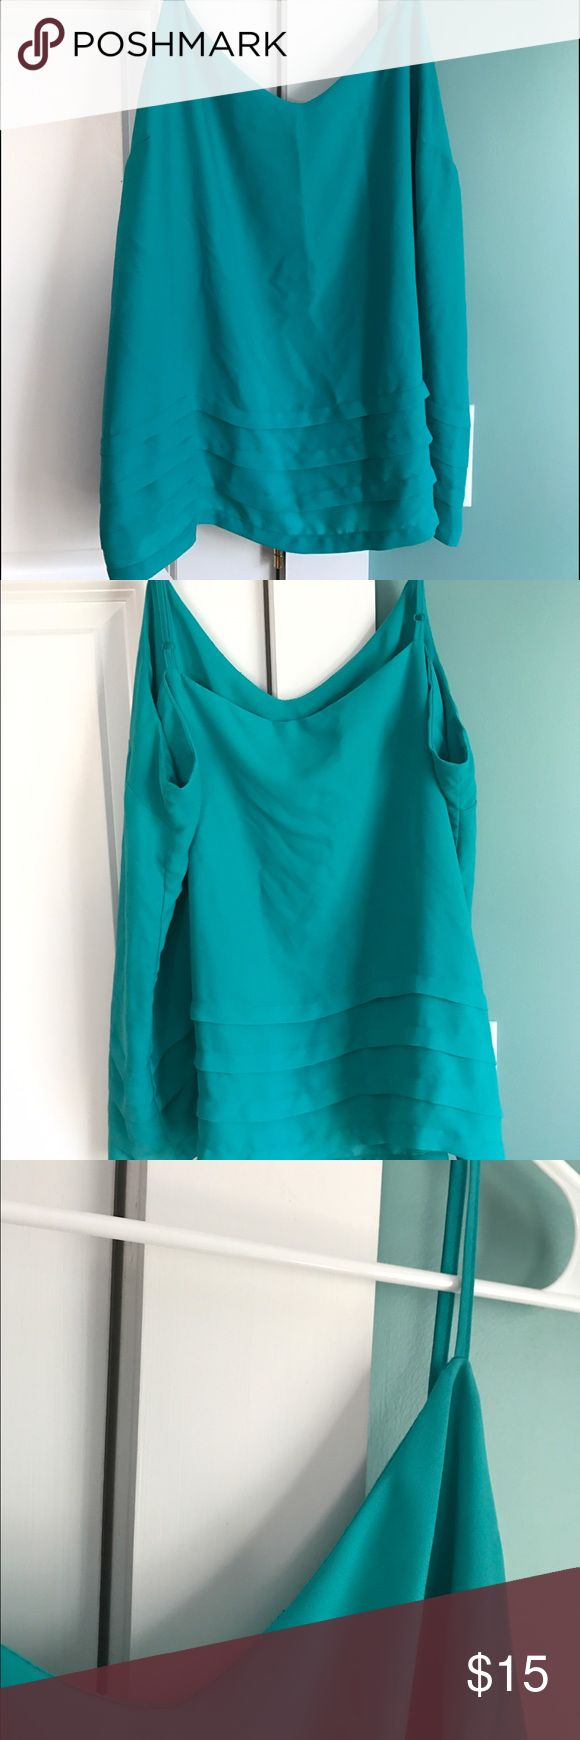 🆕 ATTENTION: dress tank XL: blue/green dress tank. 100% polyester. Slight fraying to straps near fastener and collar line, but much life left. Super cute for a night out. Please use the offer button to negotiate pricing.  No trades, PayPal or off-site transactions. 🚫 Attention Tops Tank Tops